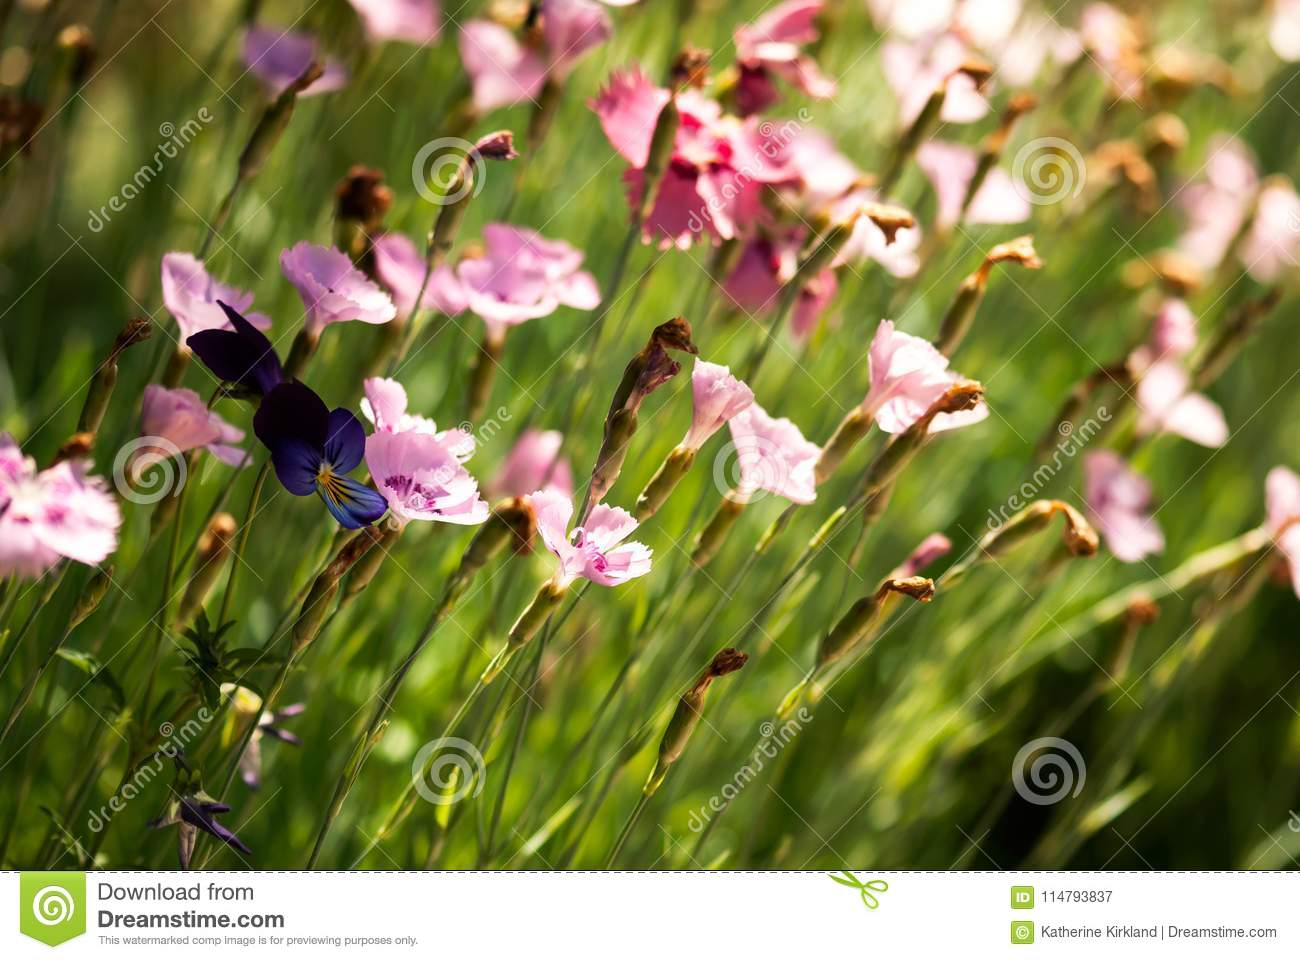 Pinks and pansy flowers stock image image of flower 114793837 pinks and pansy flowers mightylinksfo